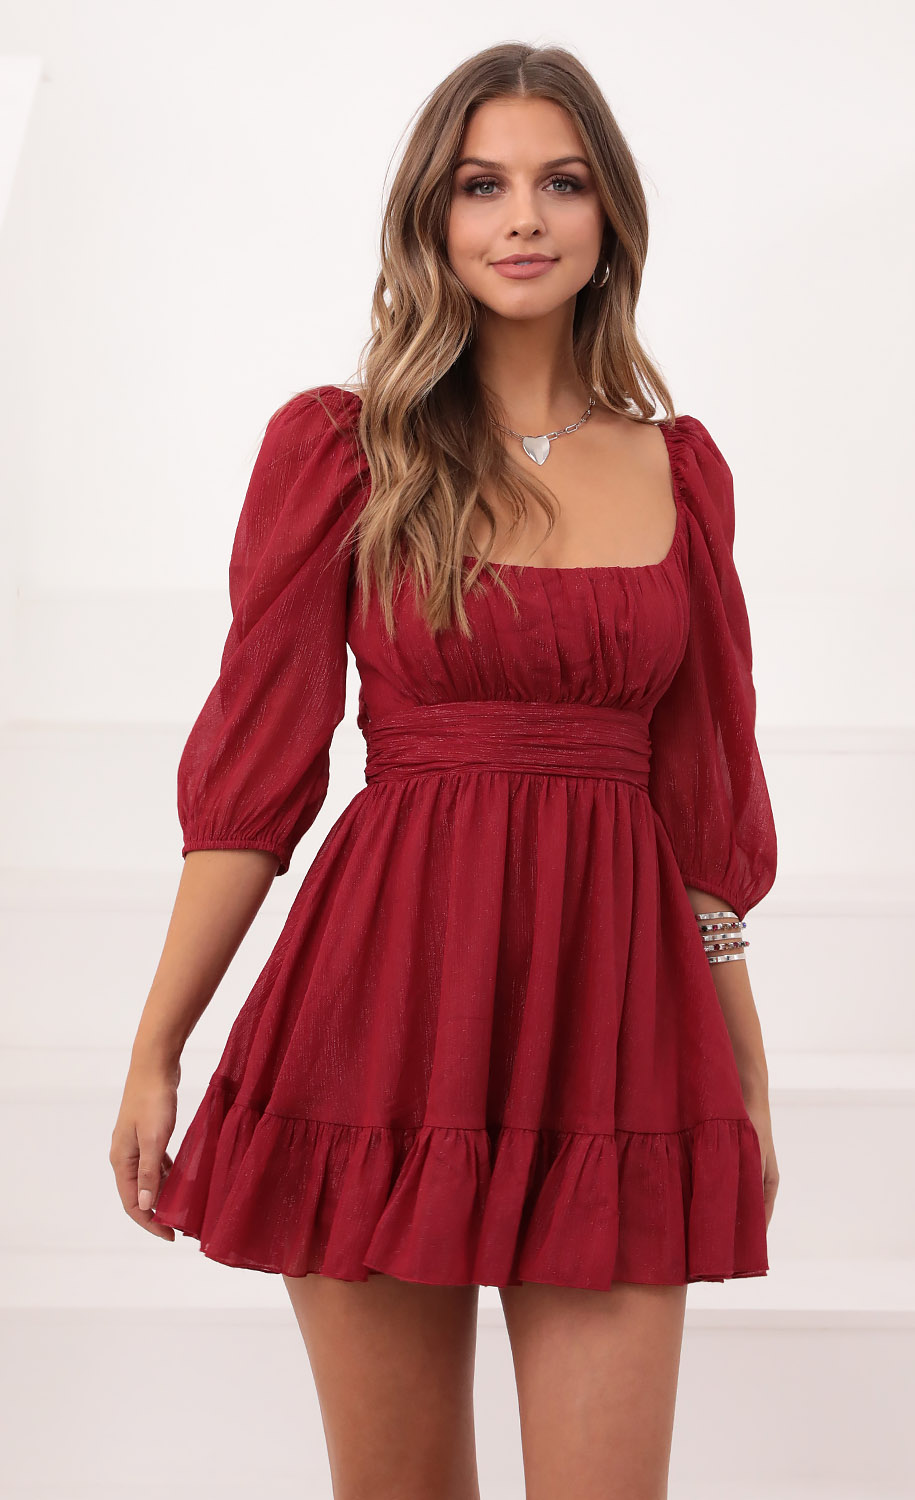 Neia Ruffle Dress in Burgundy